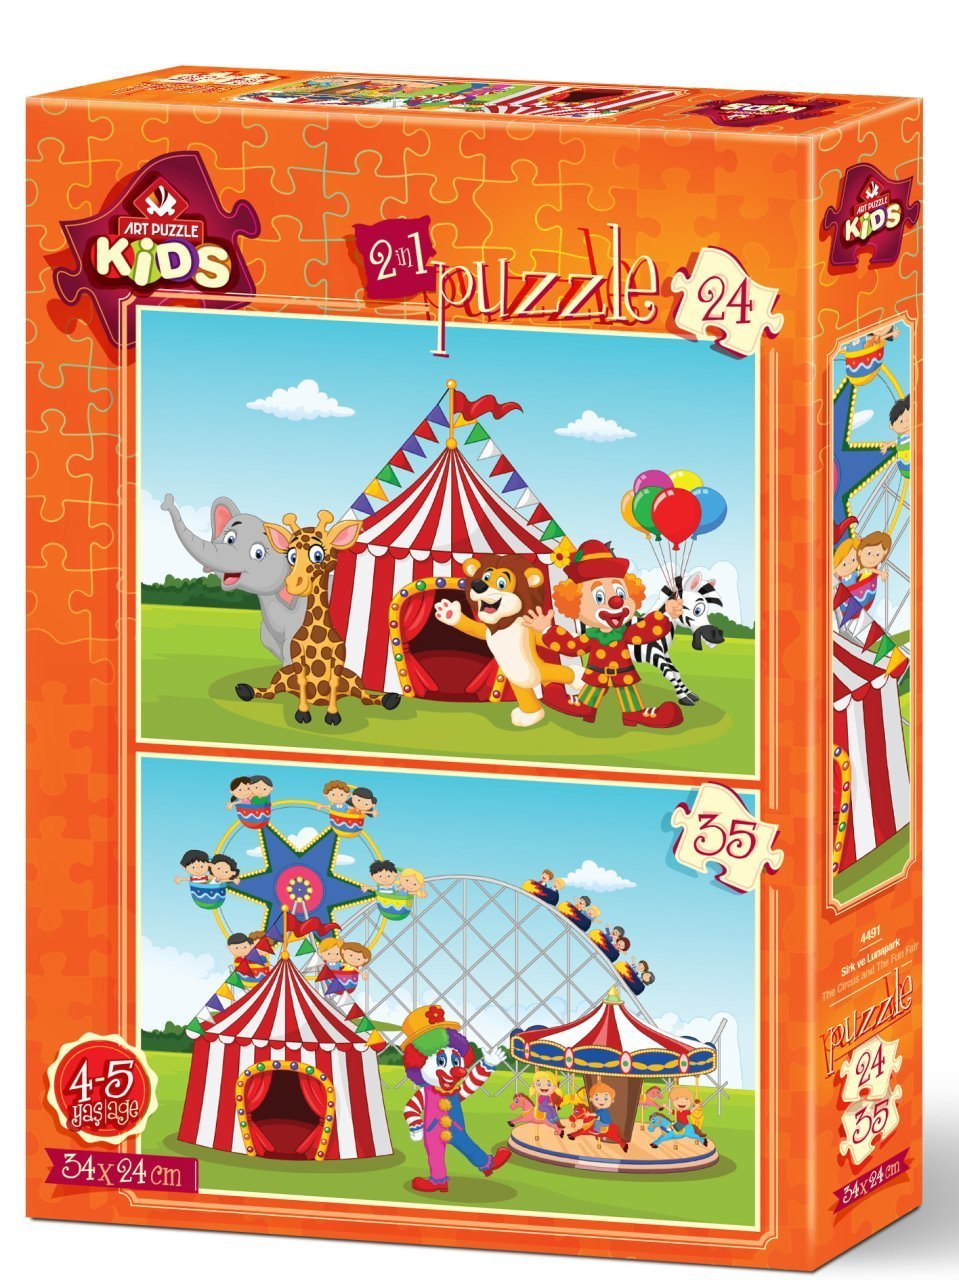 Art Puzzle 2 Puzzles - The Circus and The Fun Fair 24 Teile Puzzle Art-Puzzle-4491